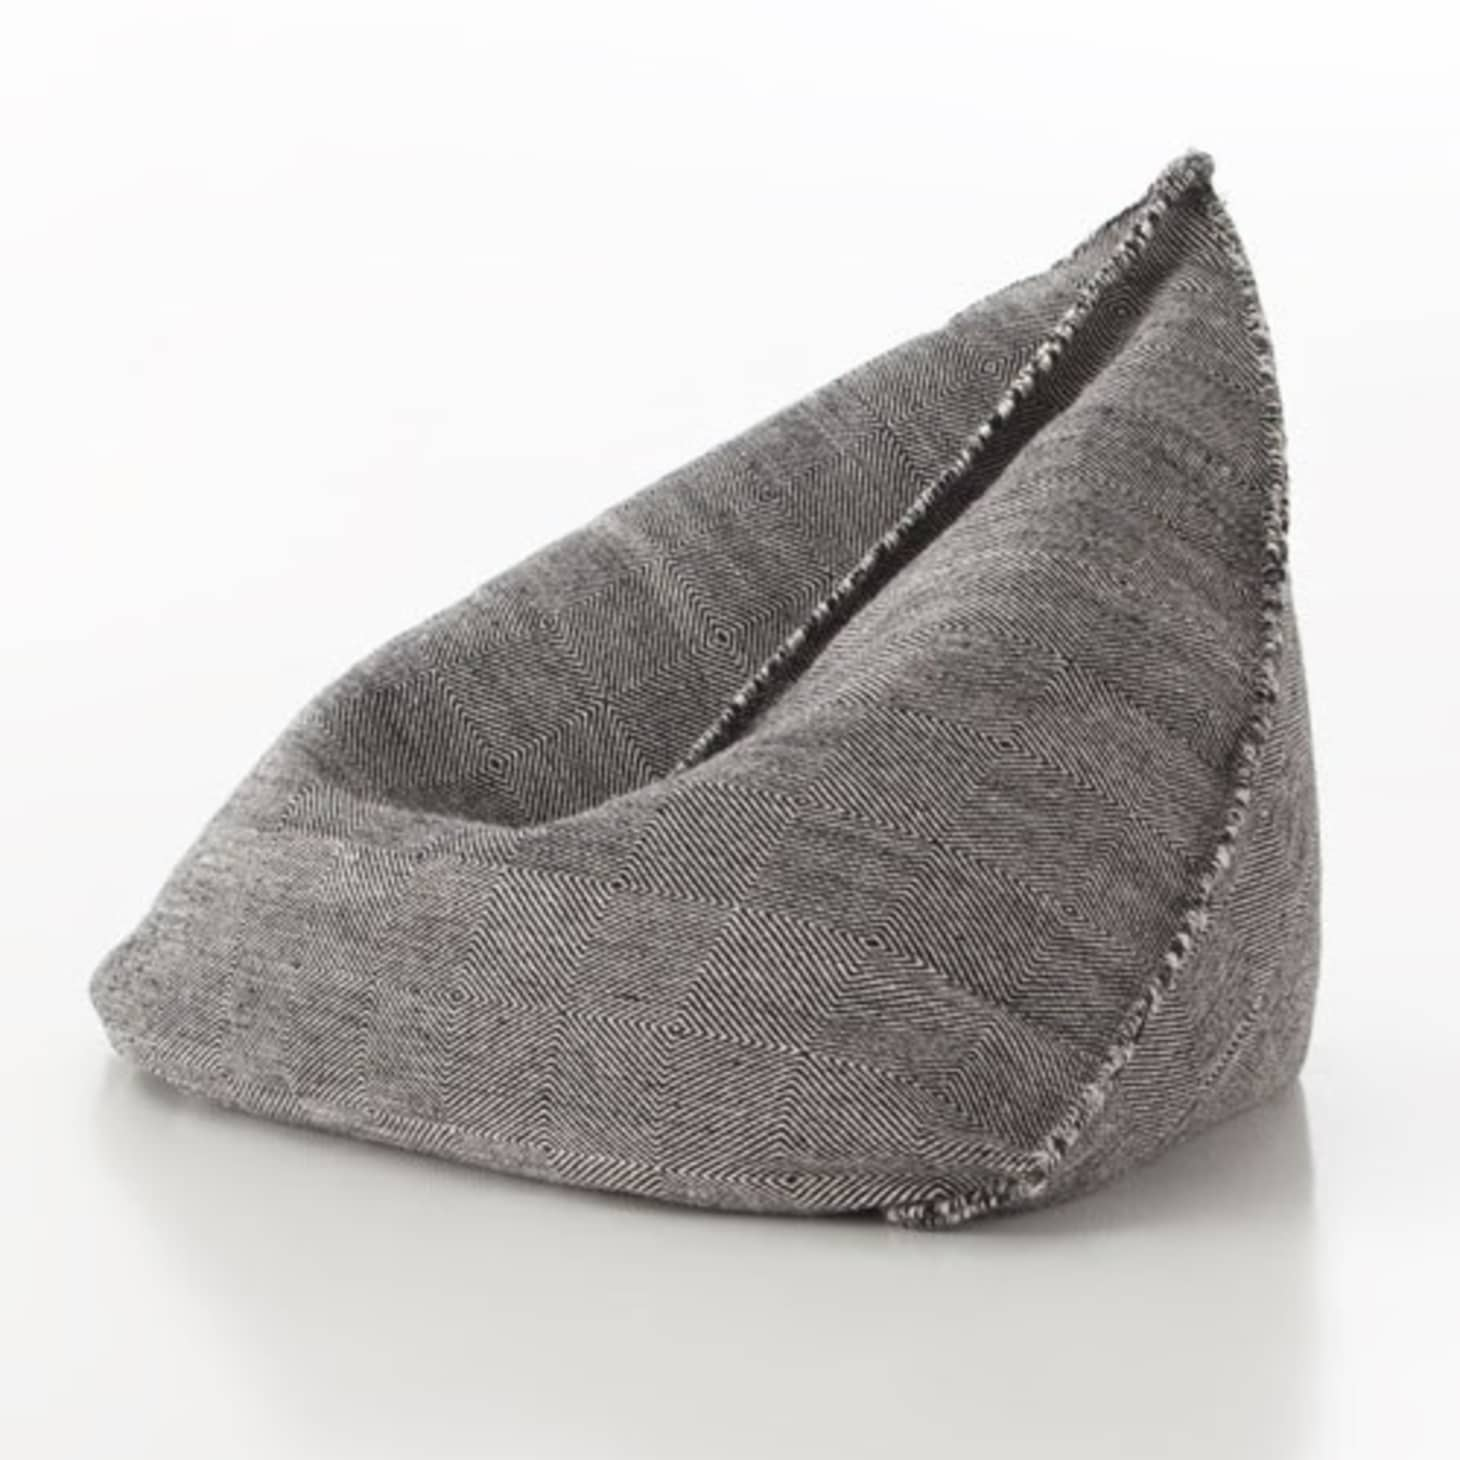 Swell Believe It Or Not 10 Surprisingly Stylish Beanbag Chairs Caraccident5 Cool Chair Designs And Ideas Caraccident5Info